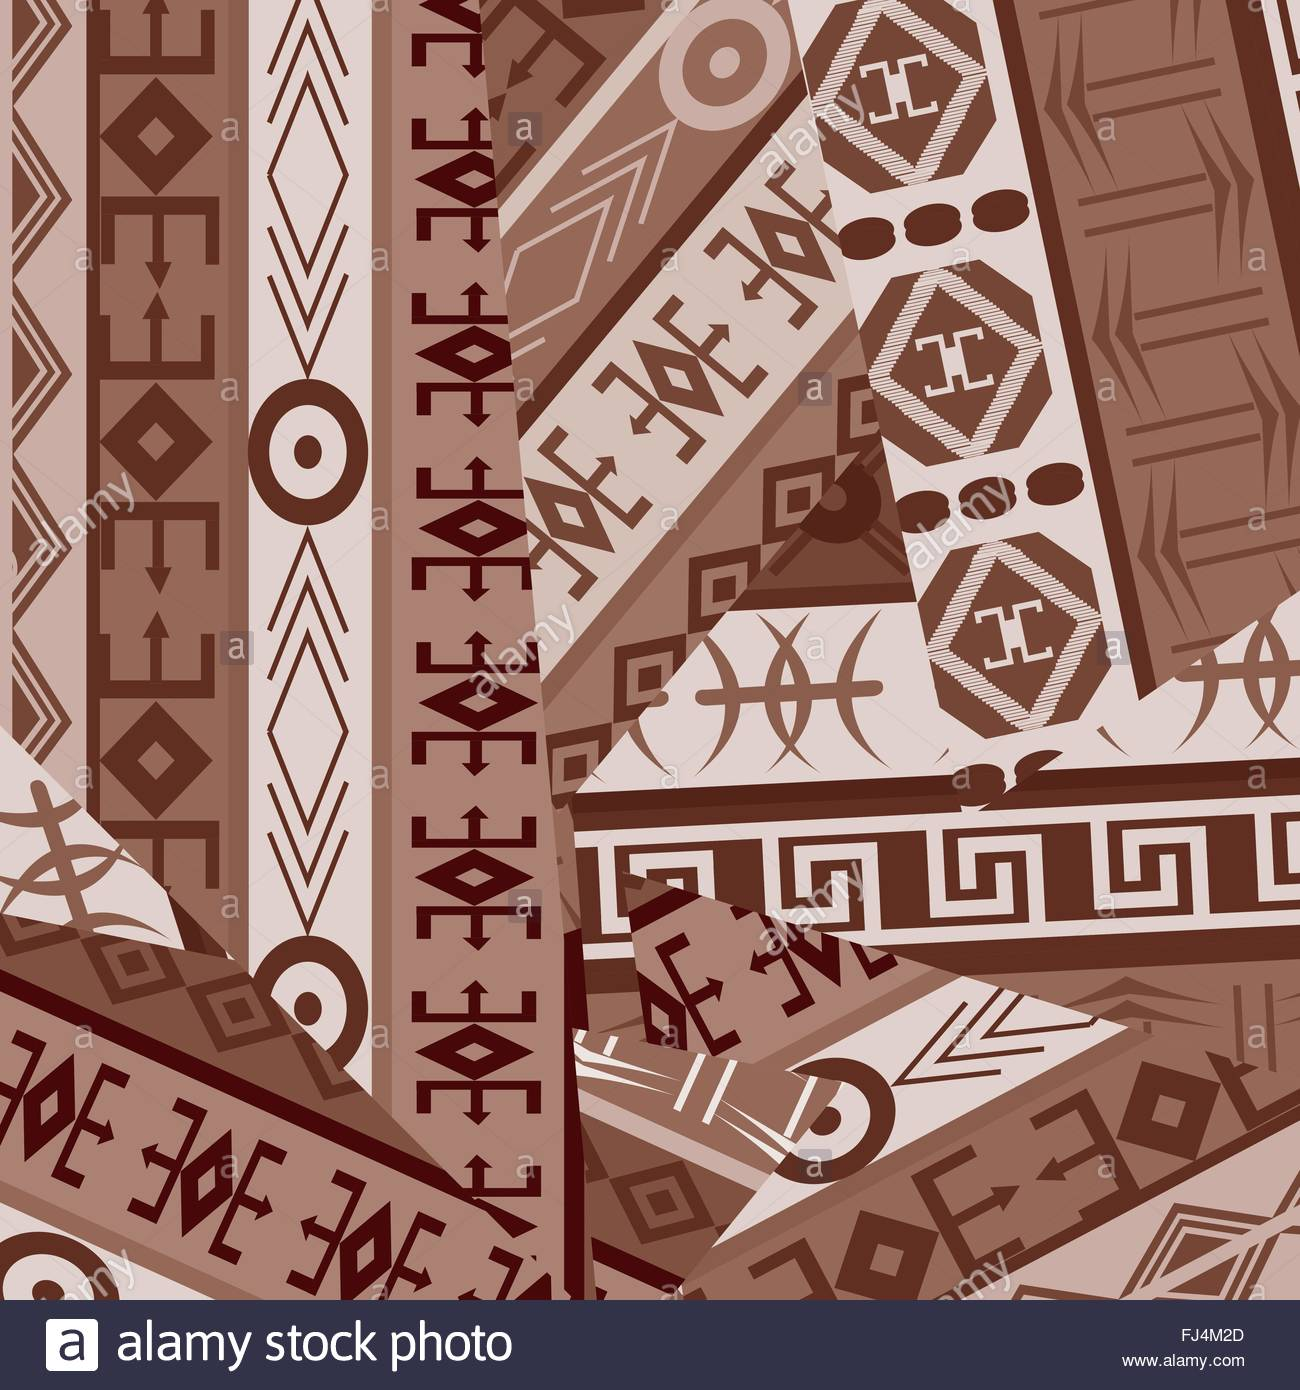 Ethnic ornaments patches in brown tones - Stock Image